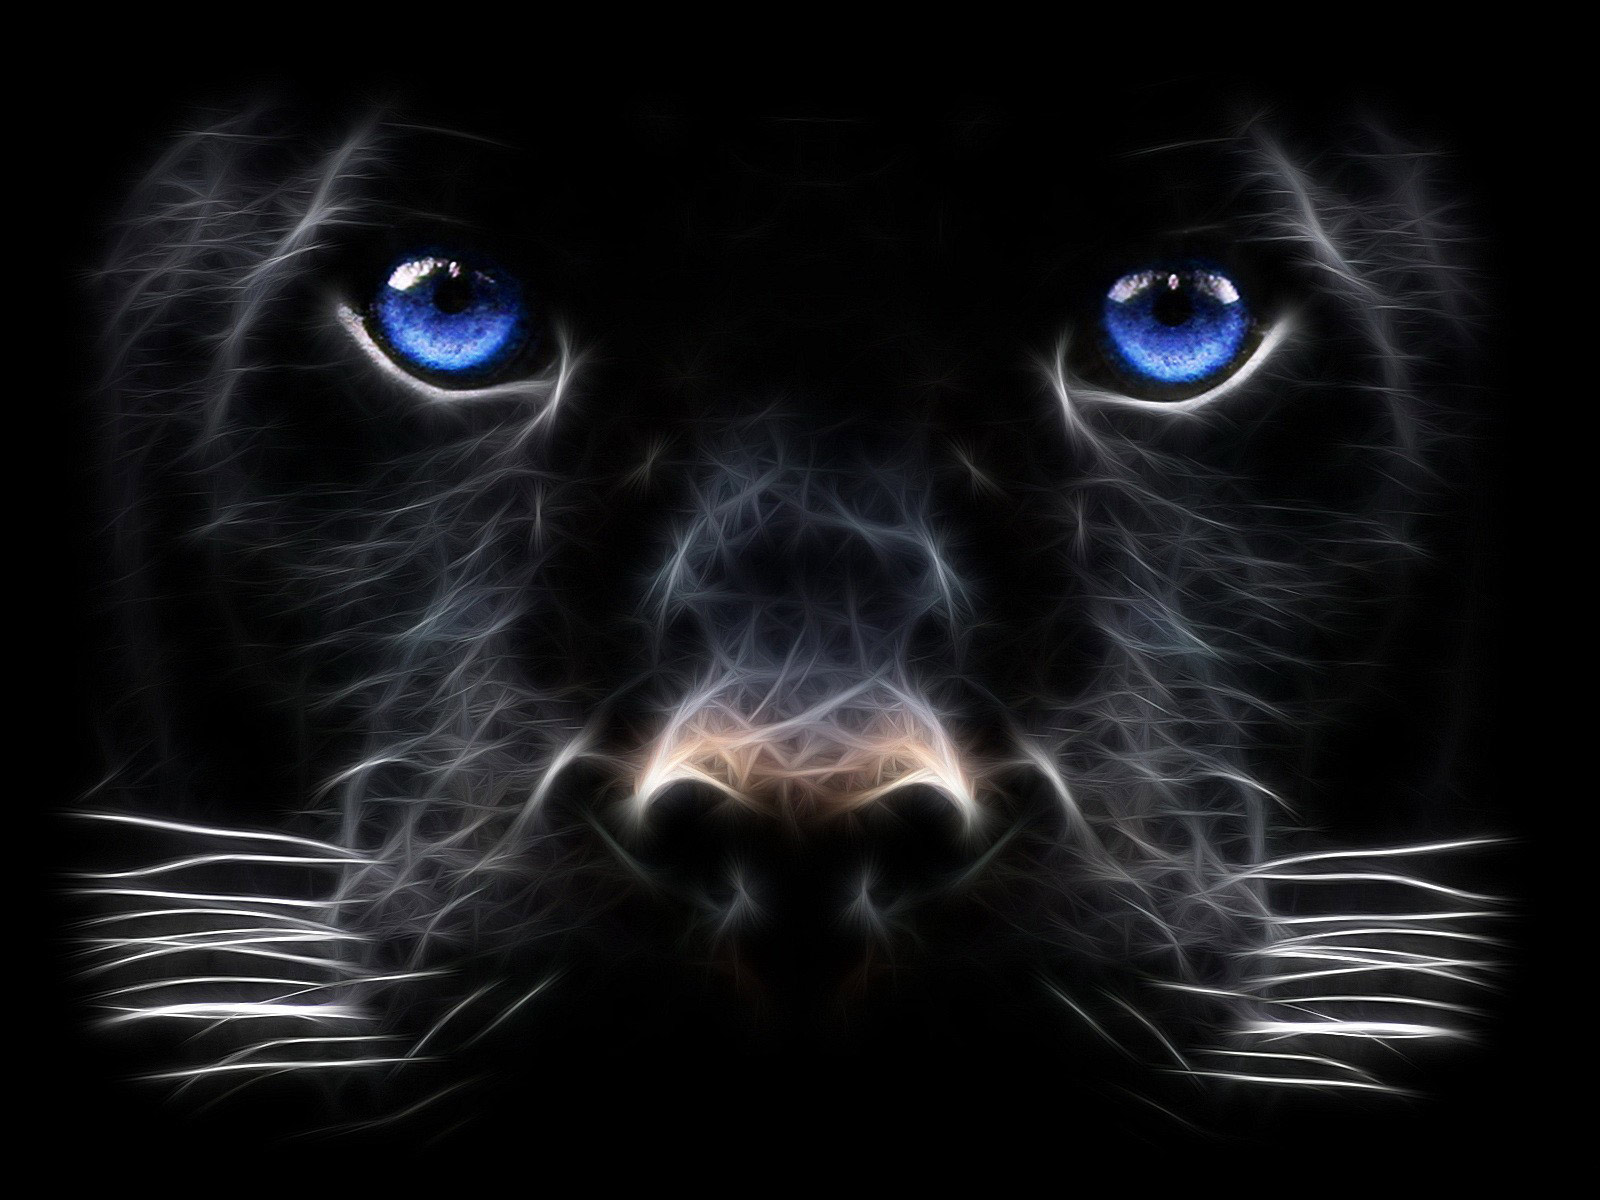 cat digital art hd wallpaper resolotion 1 600px 1 200px tags black cat